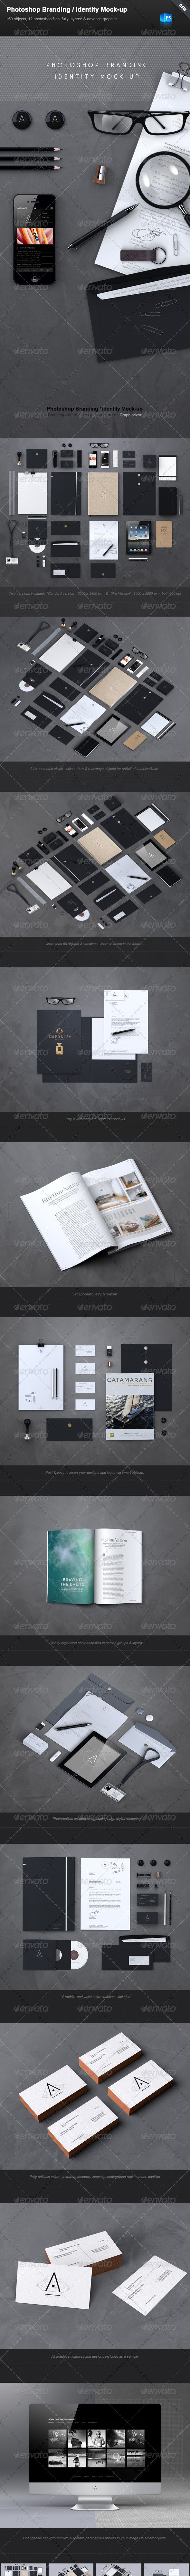 Stationery / Branding Mock-Up - Print Product Mock-Ups